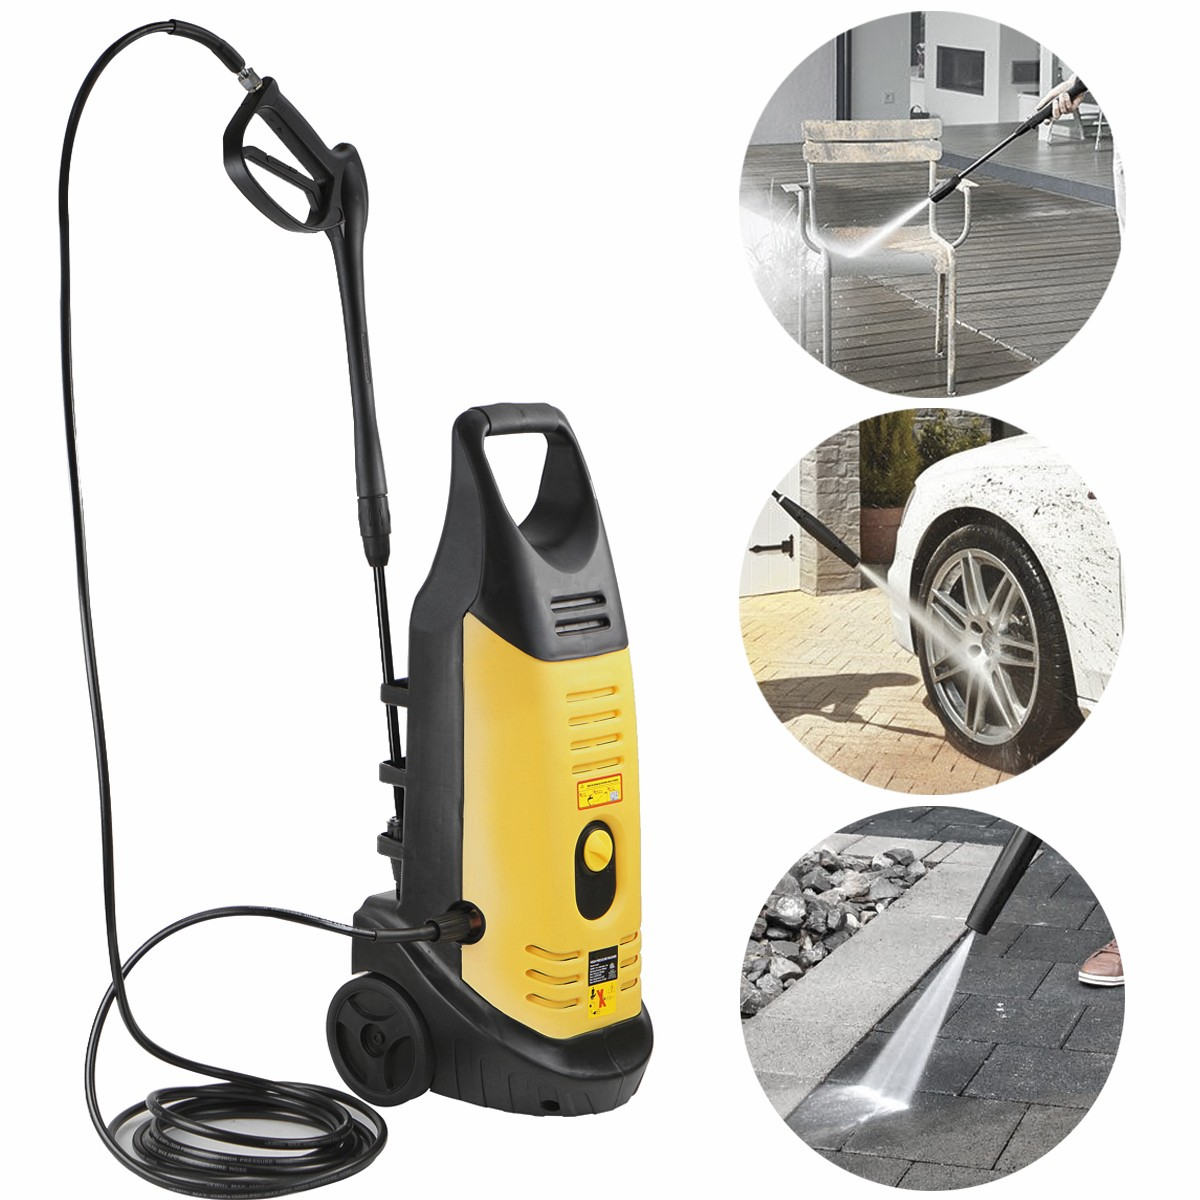 STKUSA 2000W High Pressure Washer Electric Jet Sprayer, 3000PSI